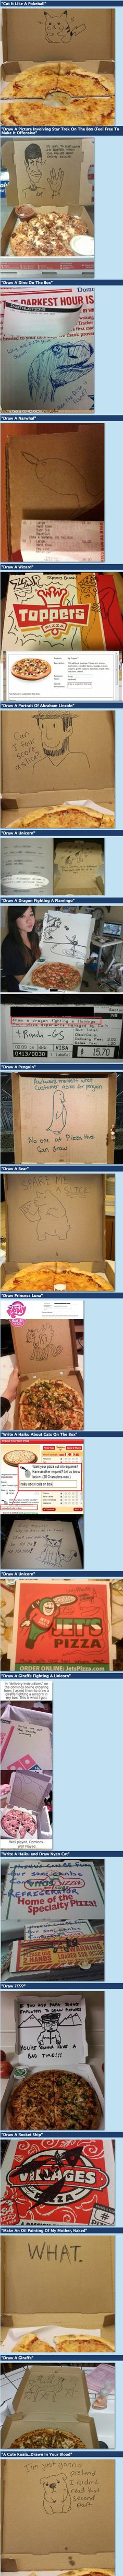 "20 Funny Special Request Pizza Box Drawings : I didn't know this was a ""thing!"""